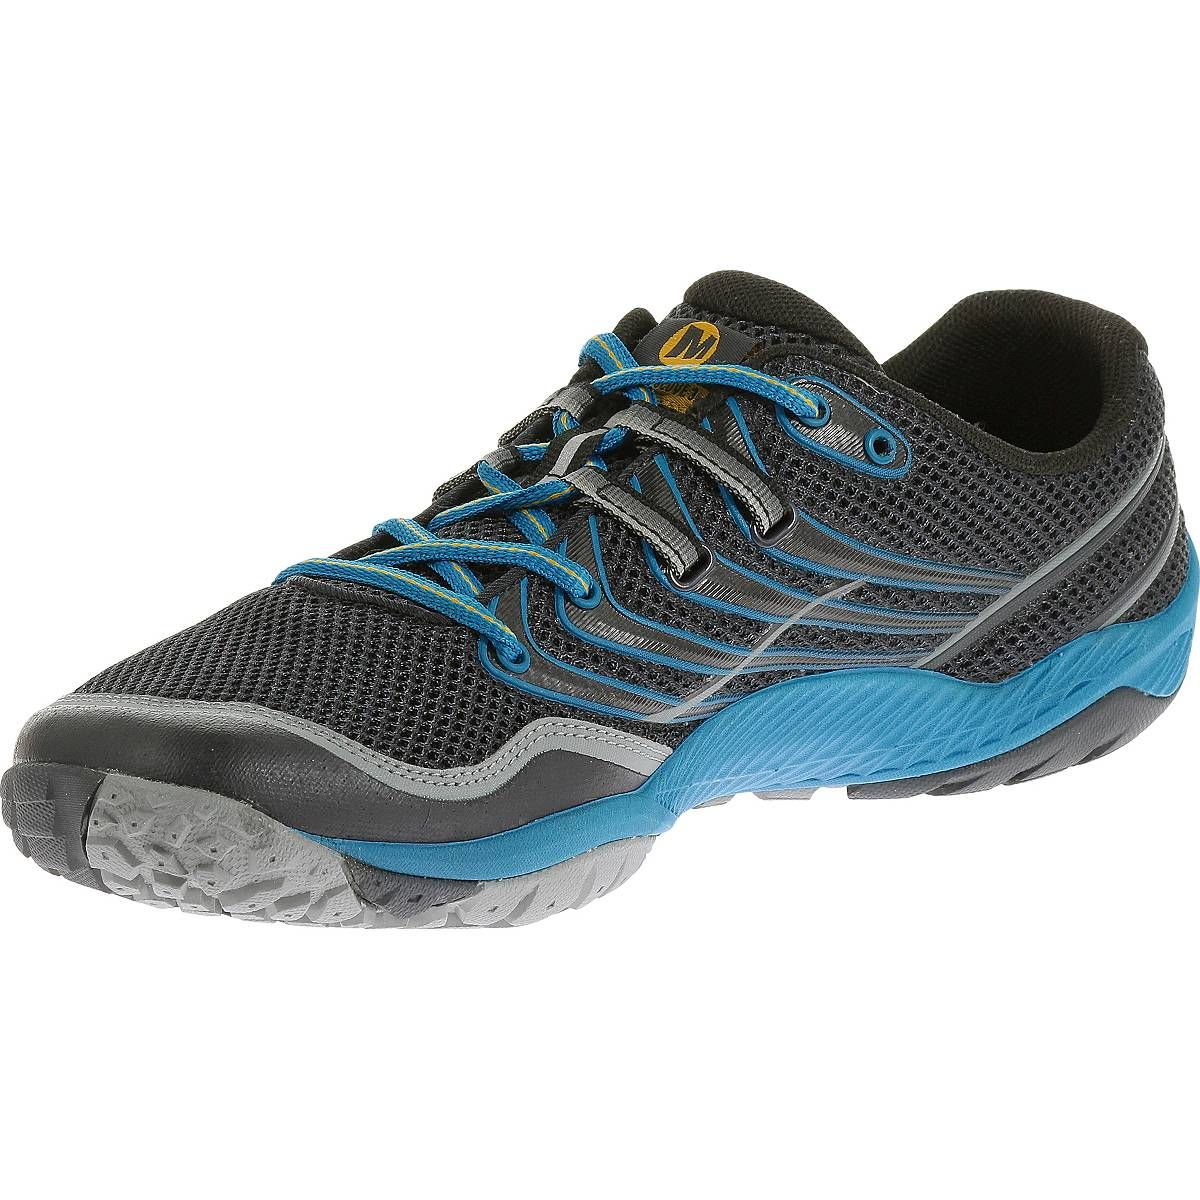 Merrell Mens Trail Running Shoes